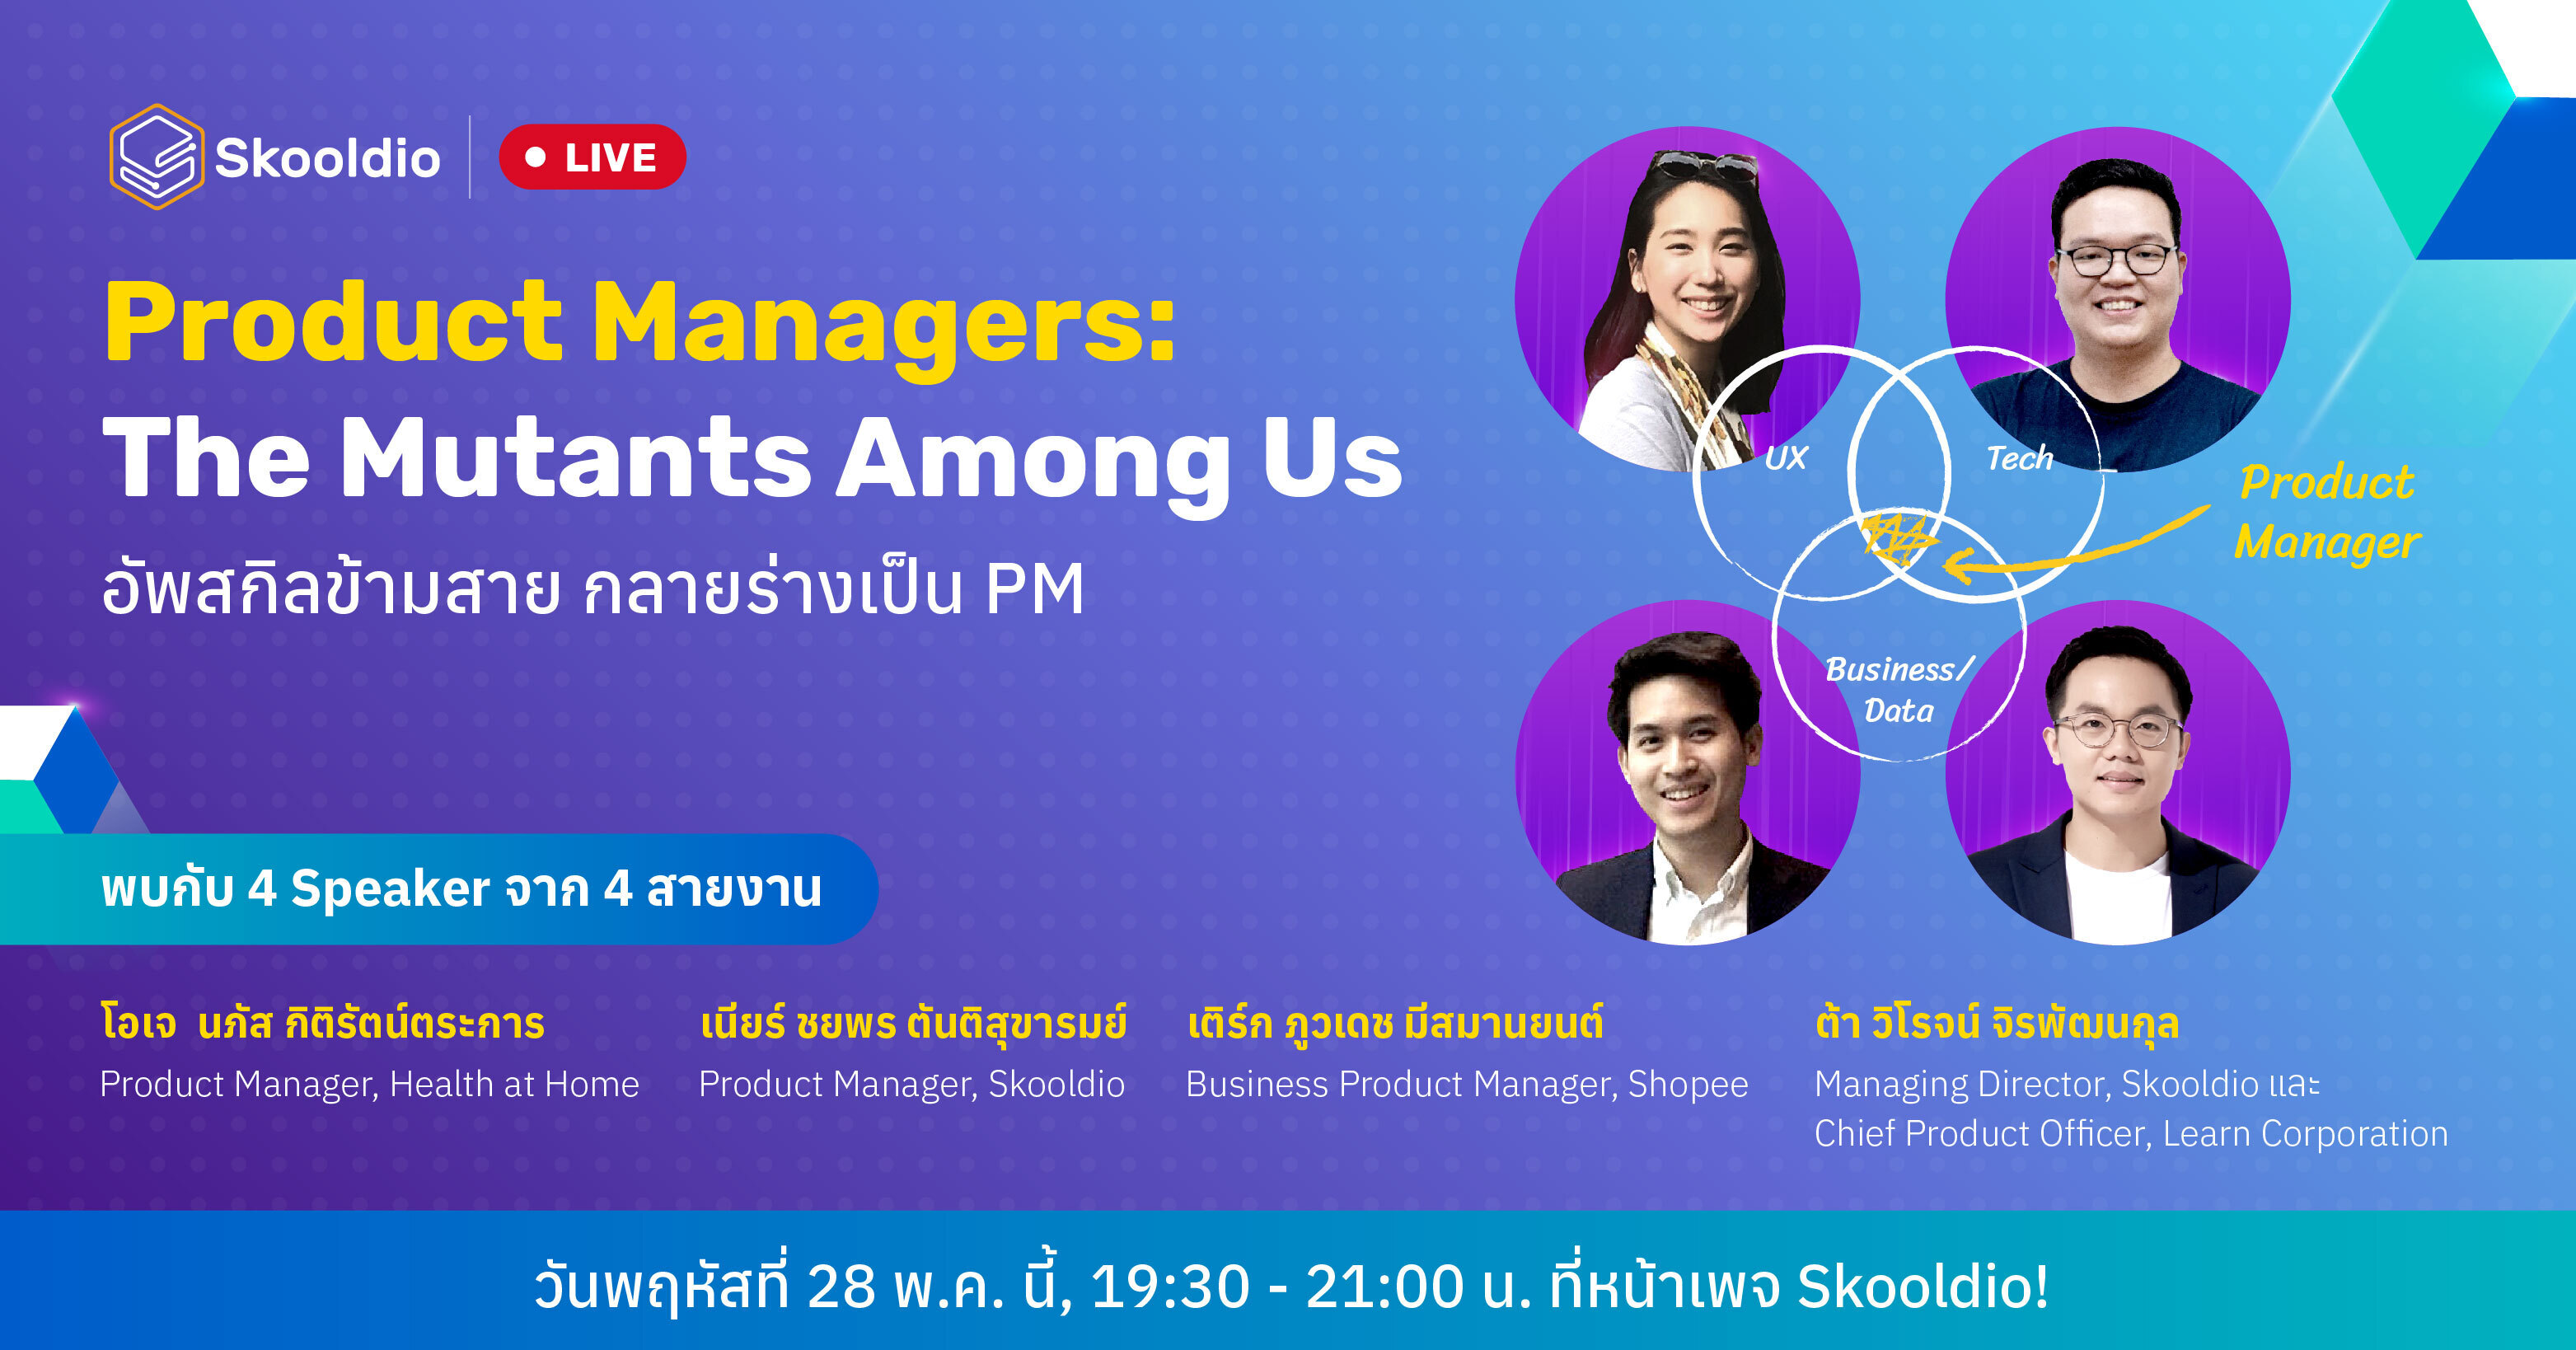 วิดีโอบันทึกงาน Product Managers: The Mutants Among Us | Skooldio Online Course: Product Managers: The Mutants Among Us